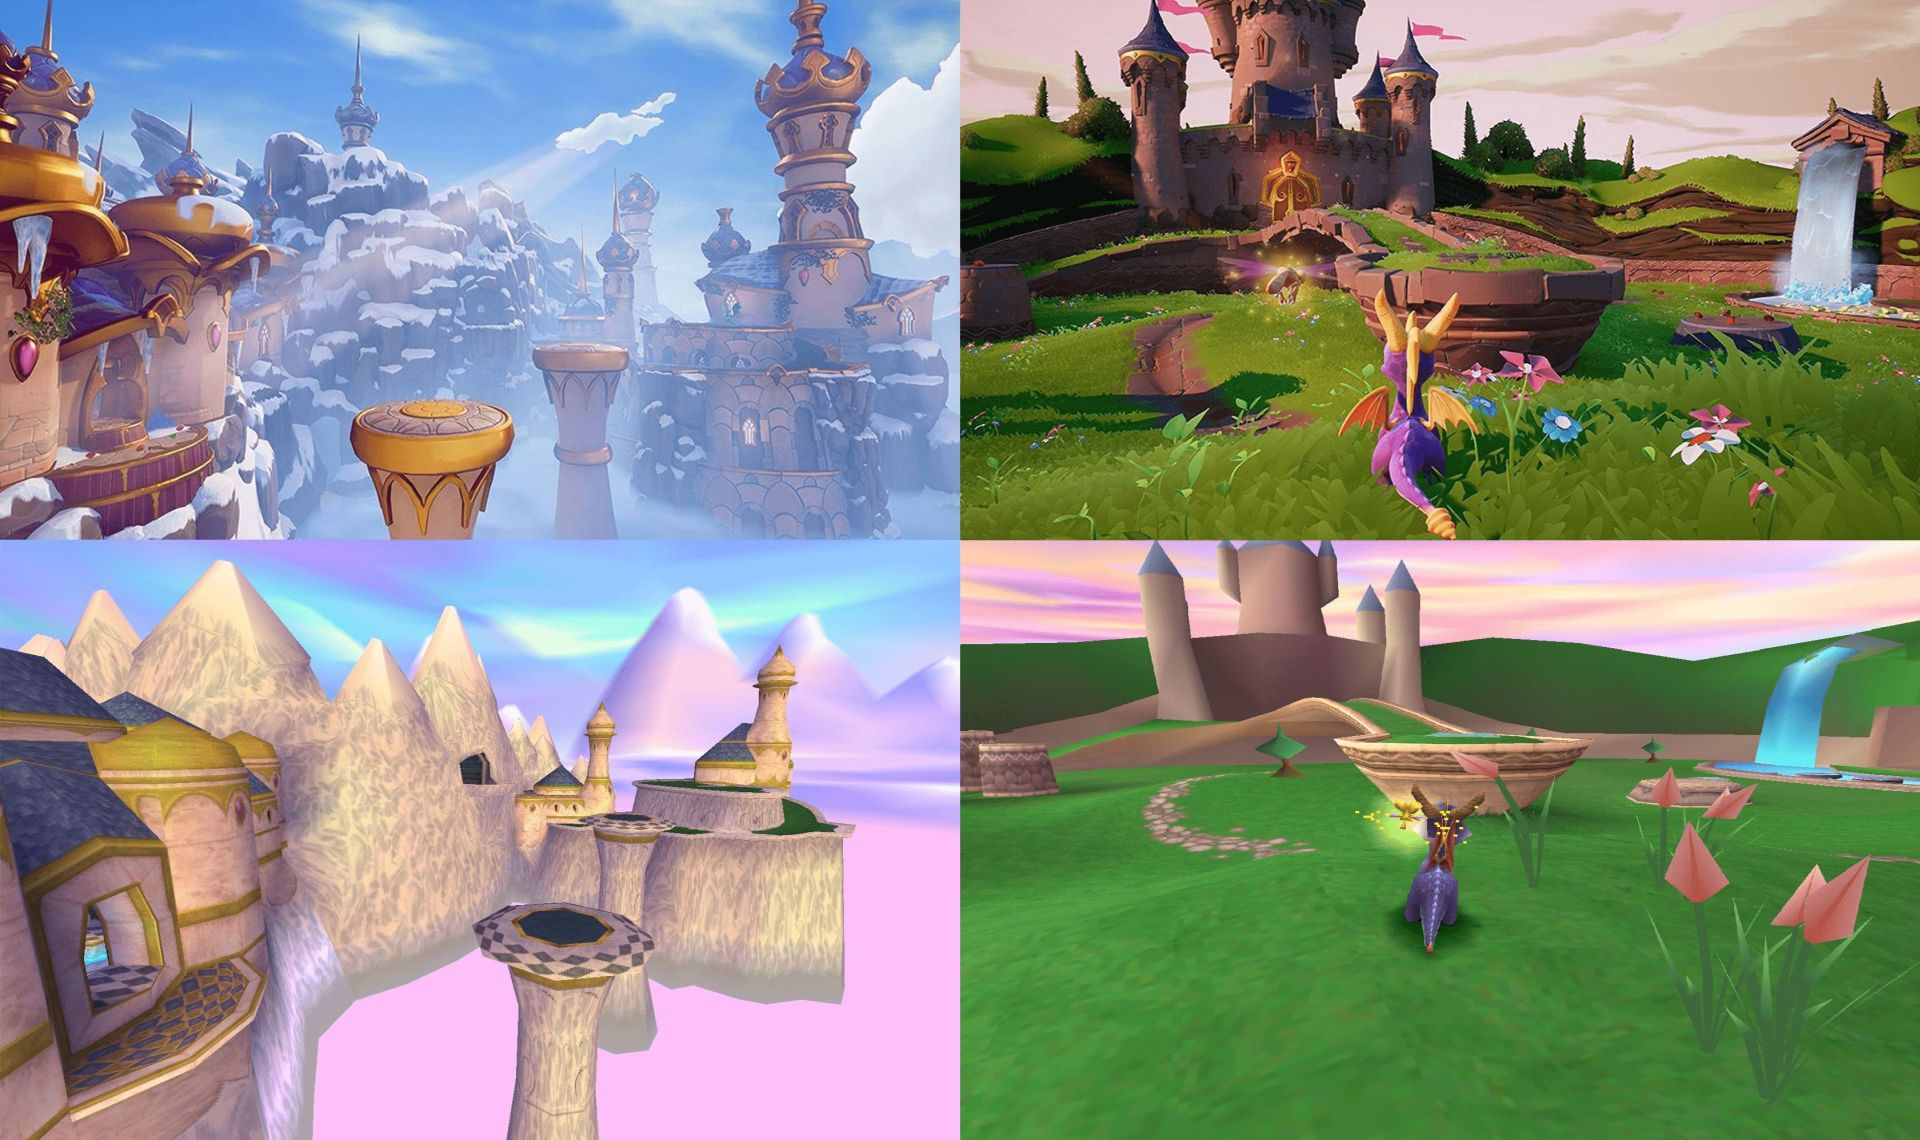 Spyro Reignited Trilogy comparison shots